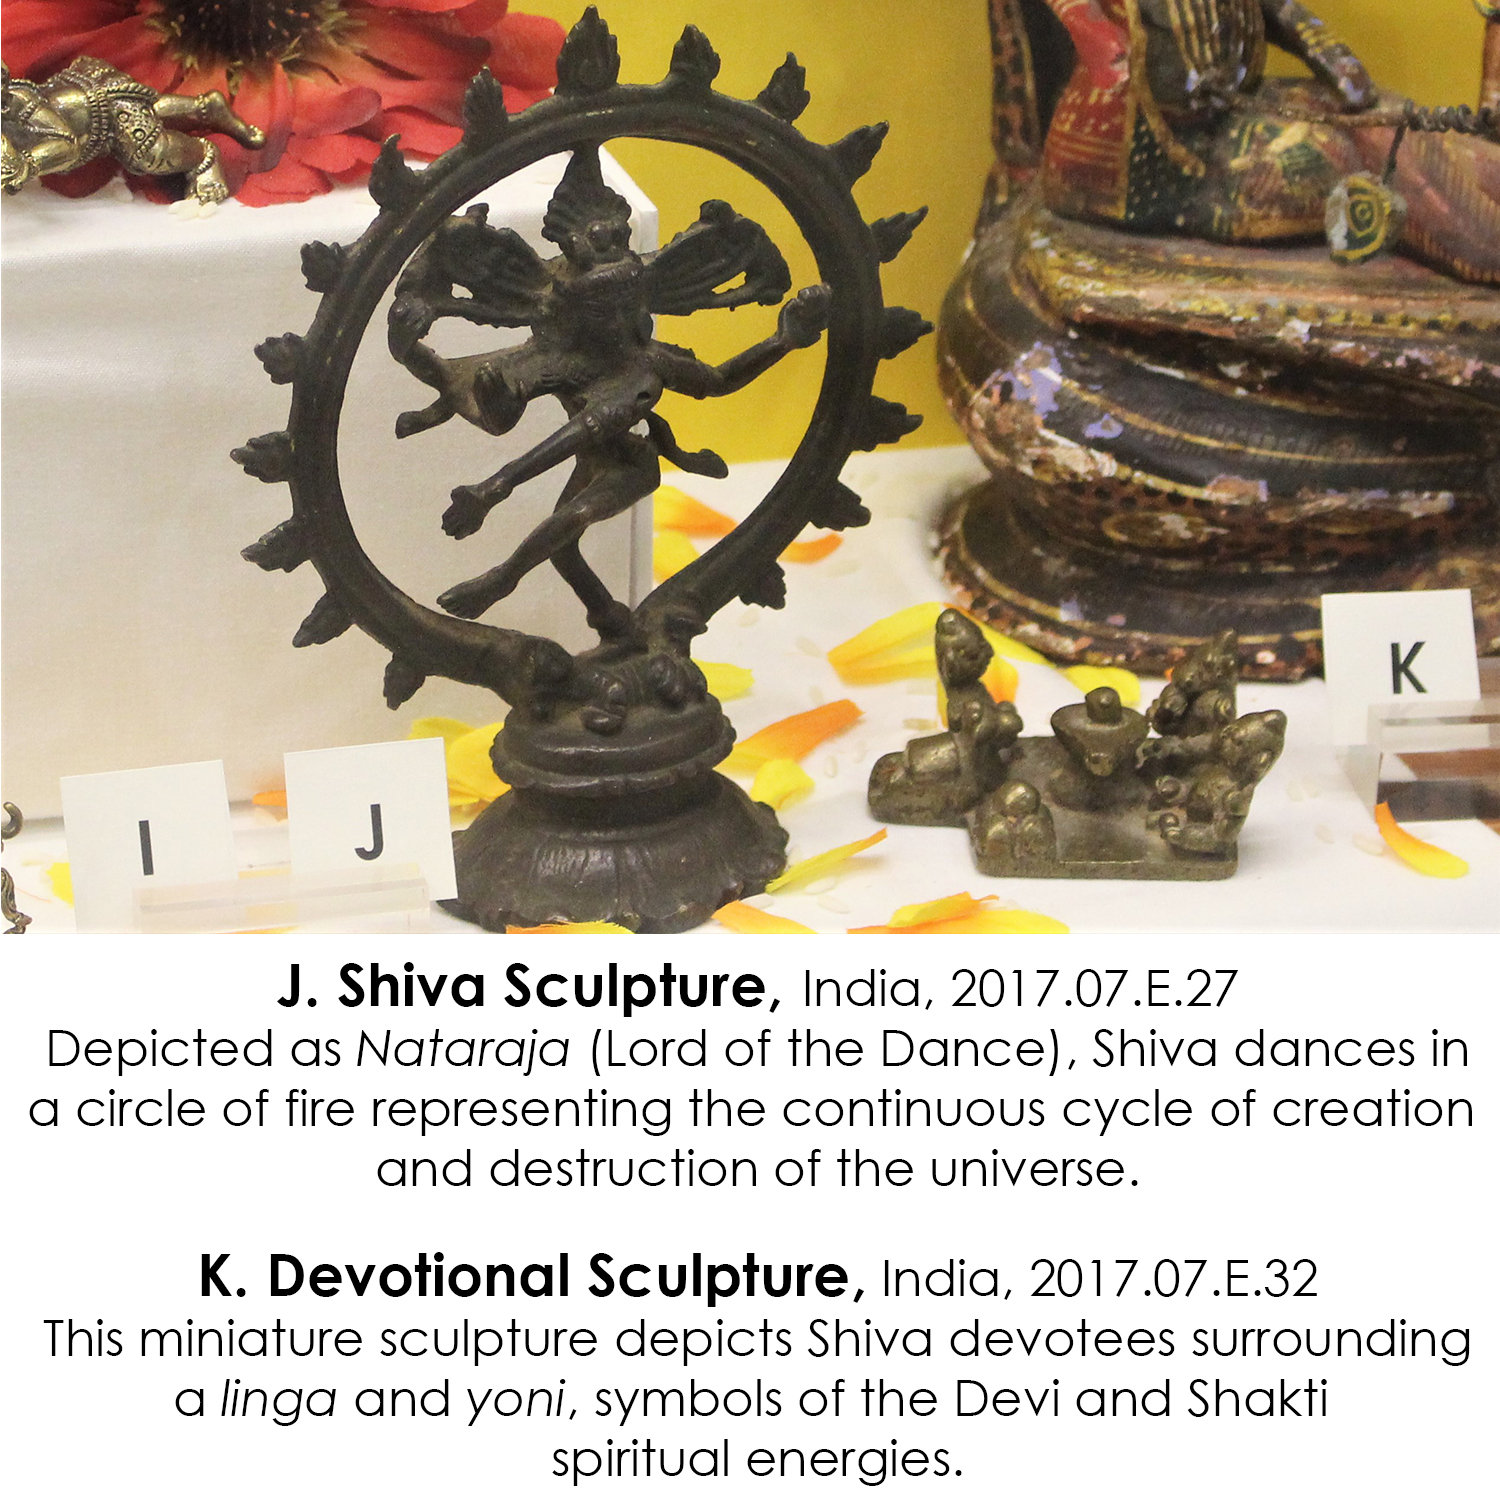 Shiva sculpture and miniature devotional sculpture from India